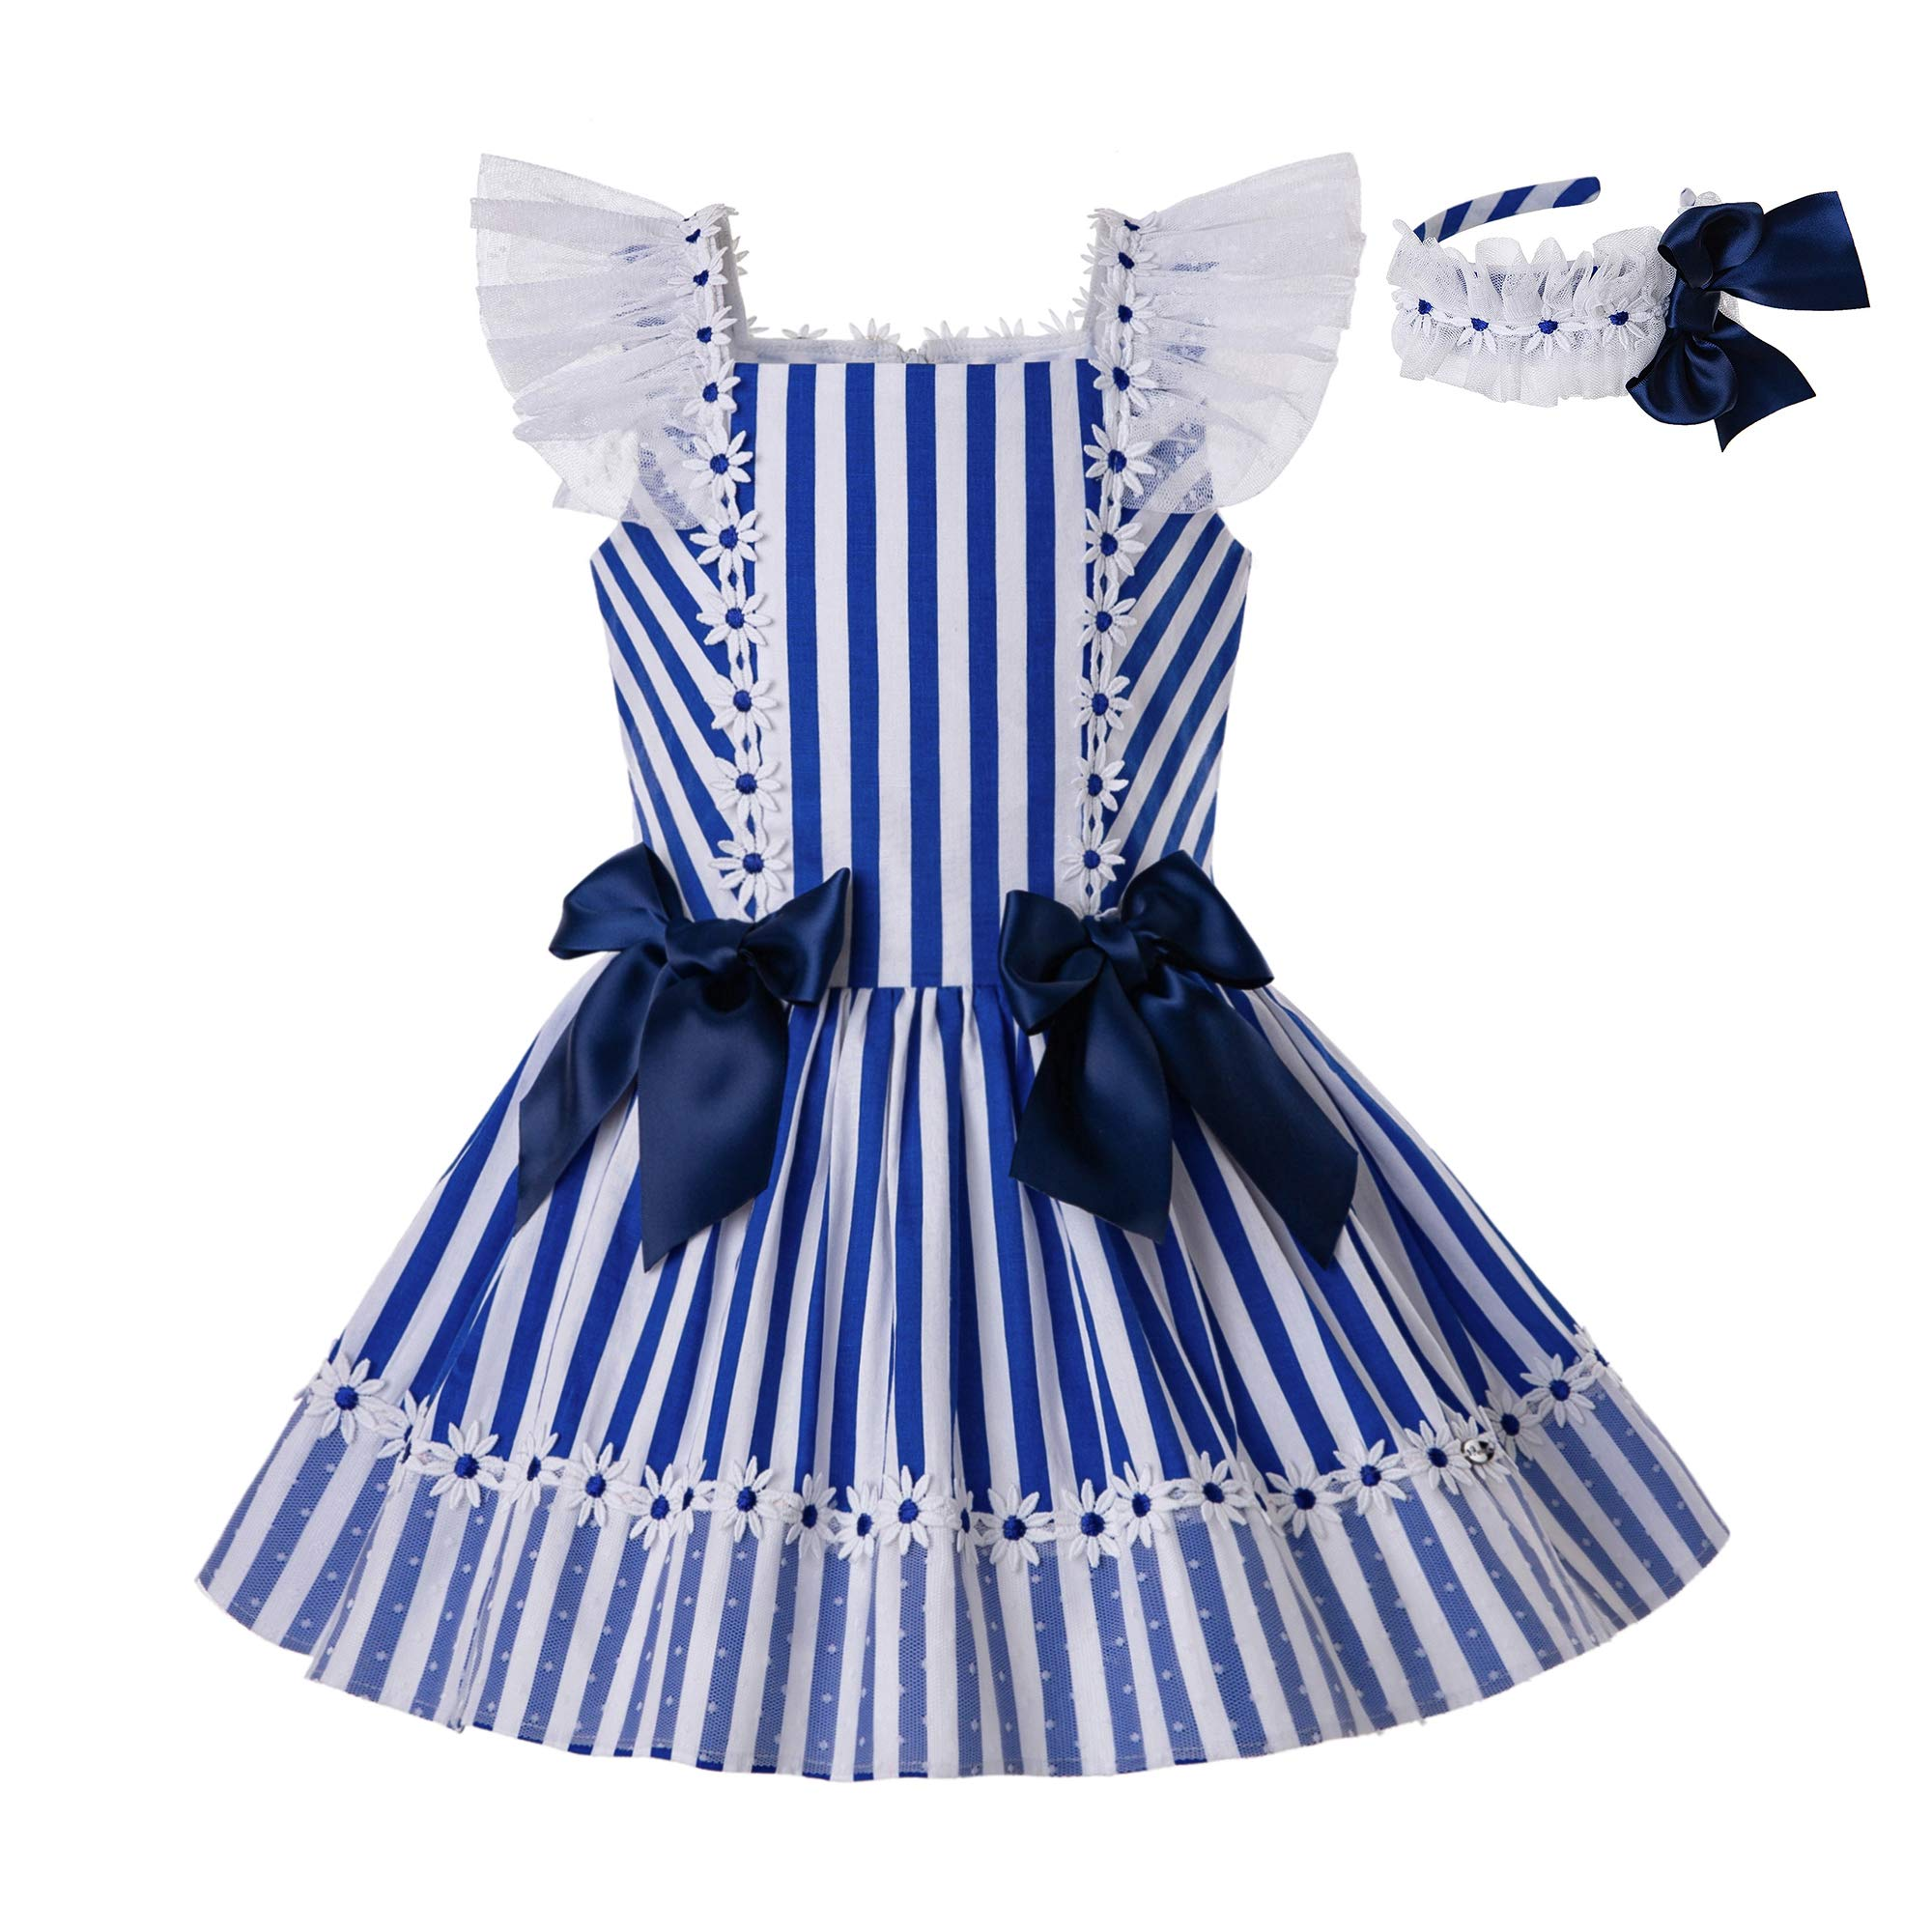 Pettigirl Girls Blue Stripe Floral Wedding Party Dress with Headwear